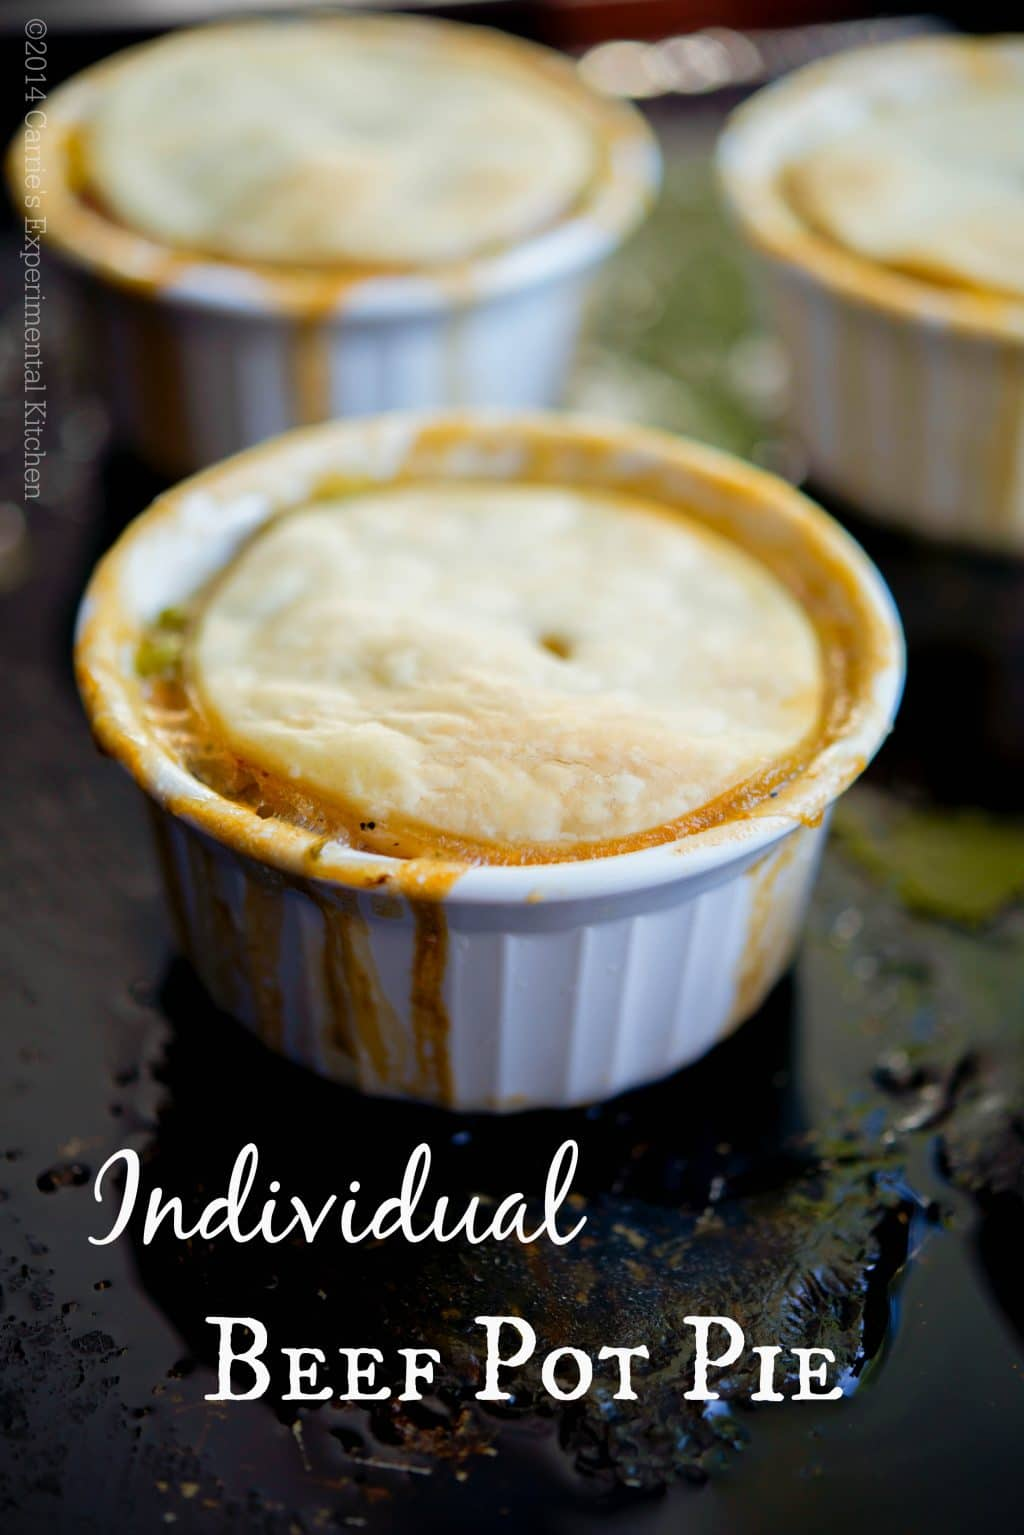 Individual Beef Pot Pie | Carrie's Experimental Kitchen #beef